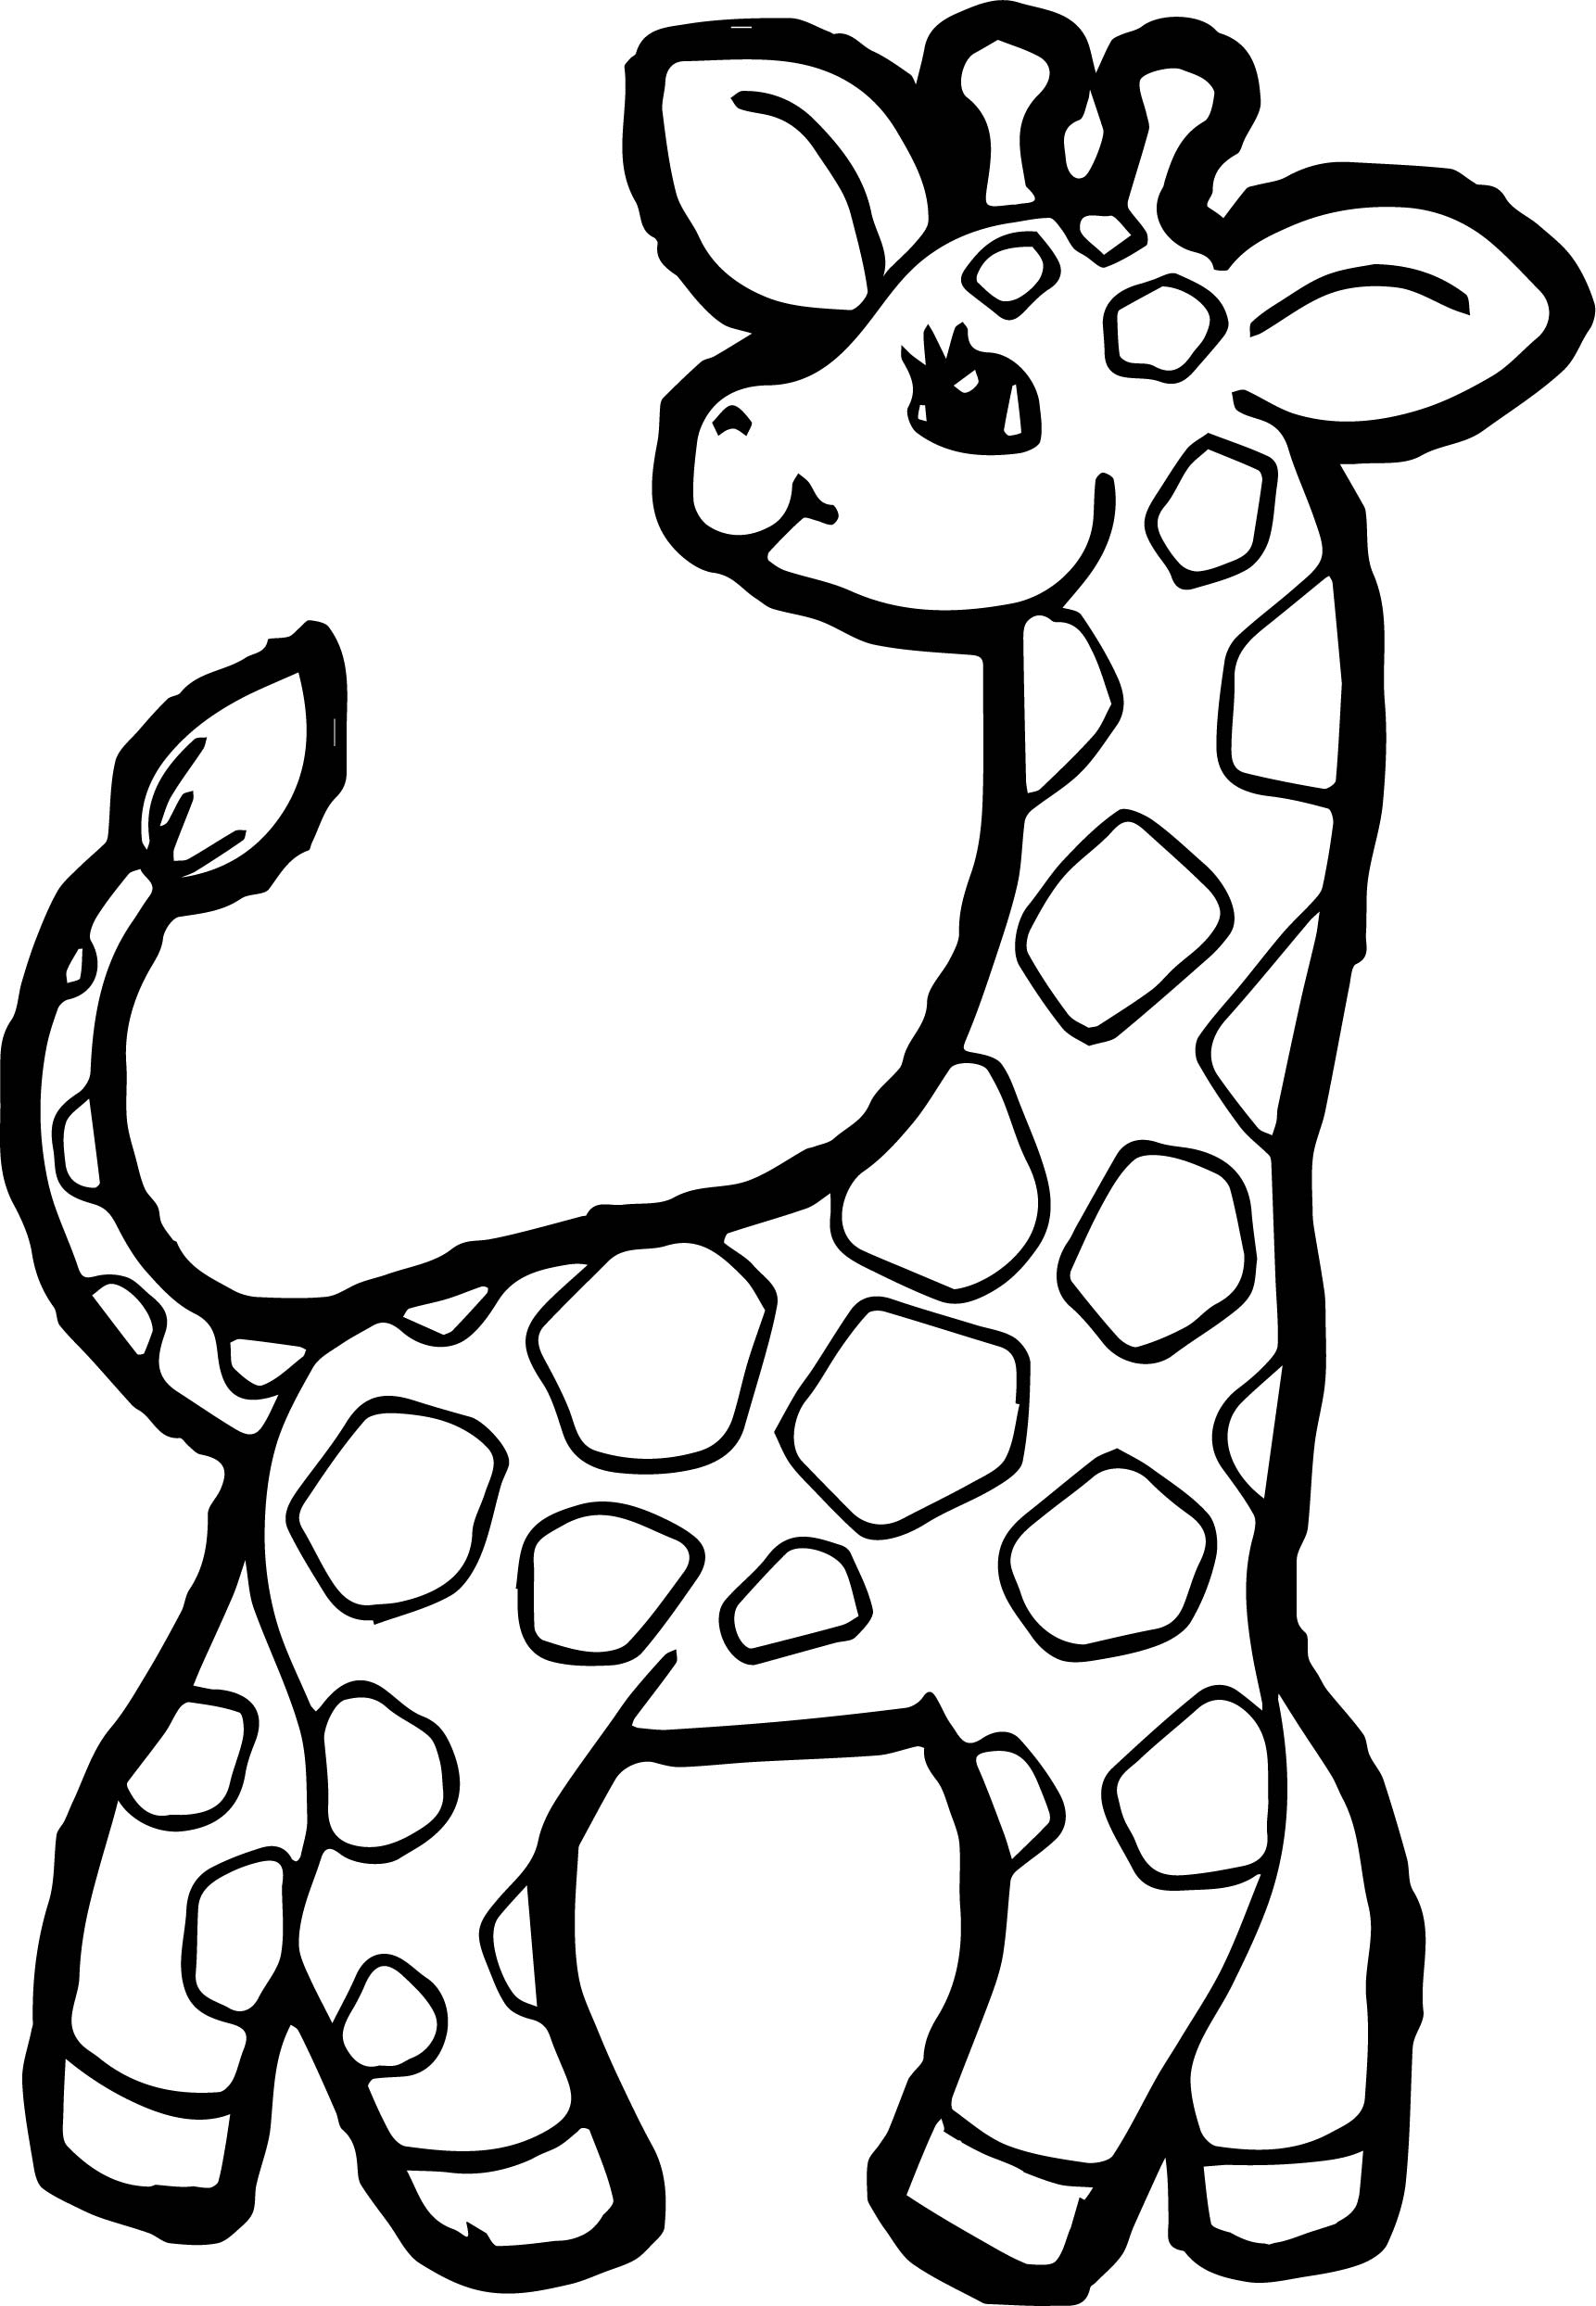 Giraffe Coloring Pages | Free download on ClipArtMag